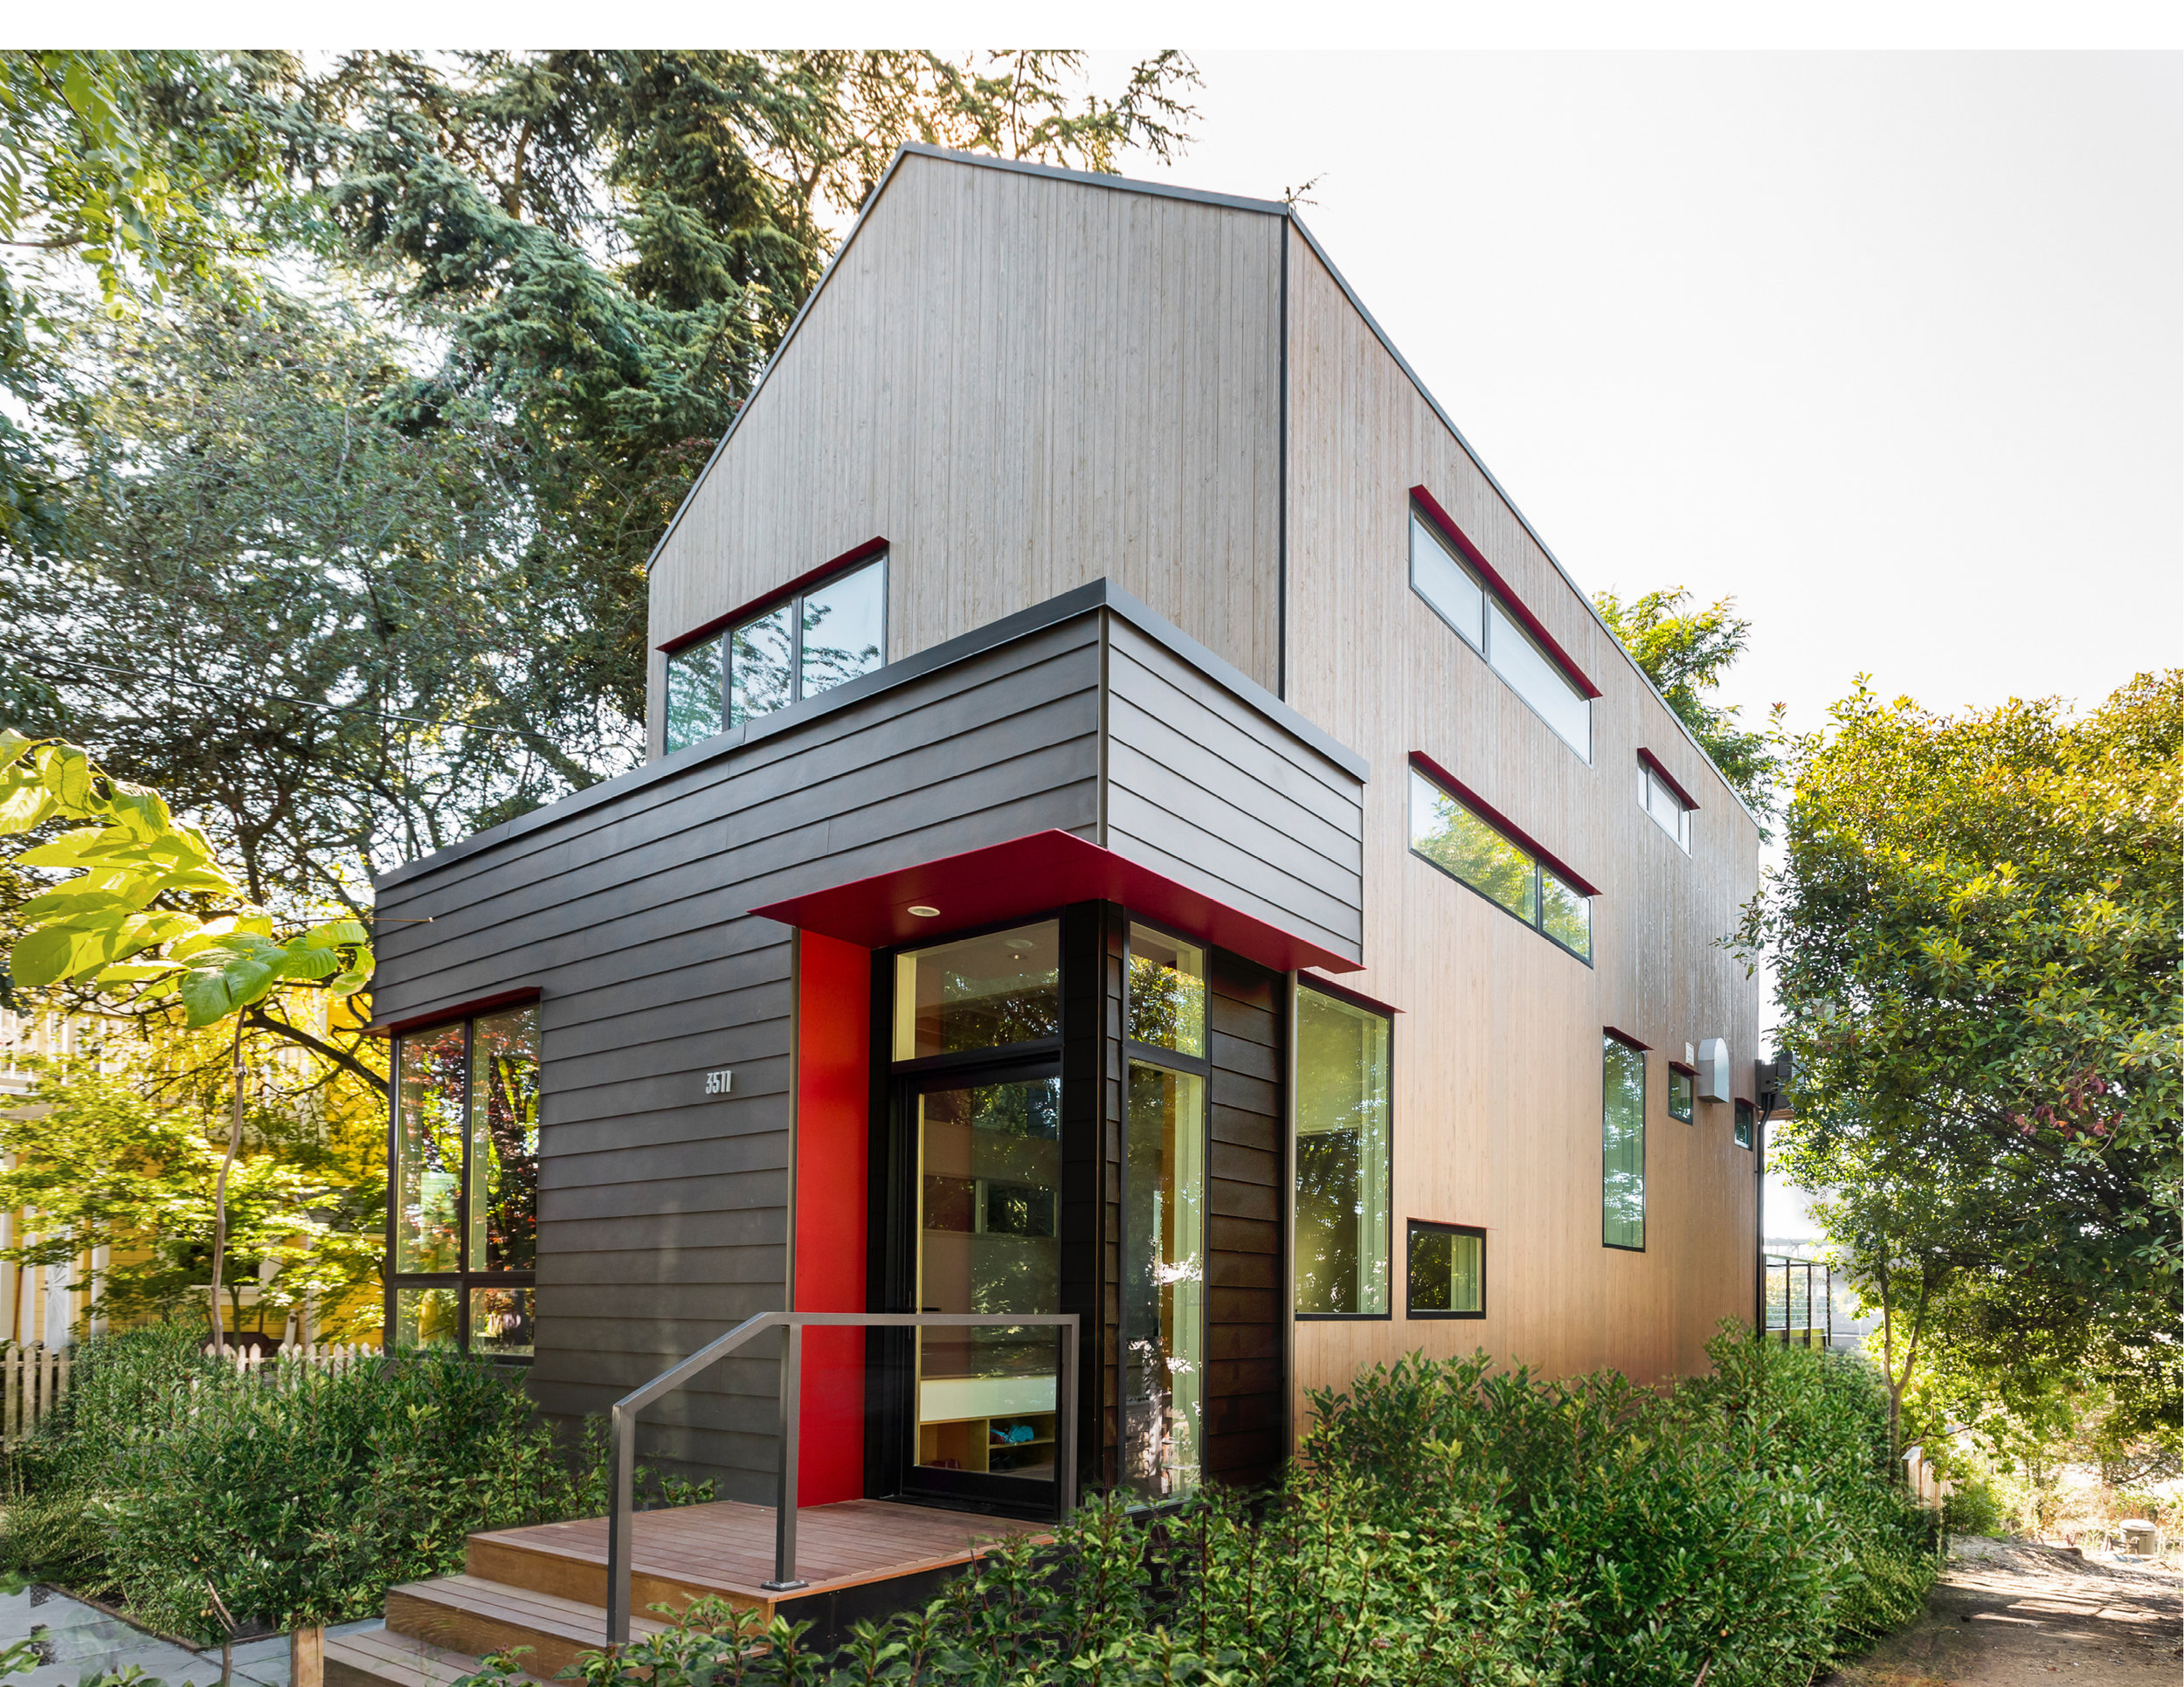 A serene modern oasis on a small urban lot, the Ashworth House is a renovation and second-story addition over a cottage originally constructed in 1912.